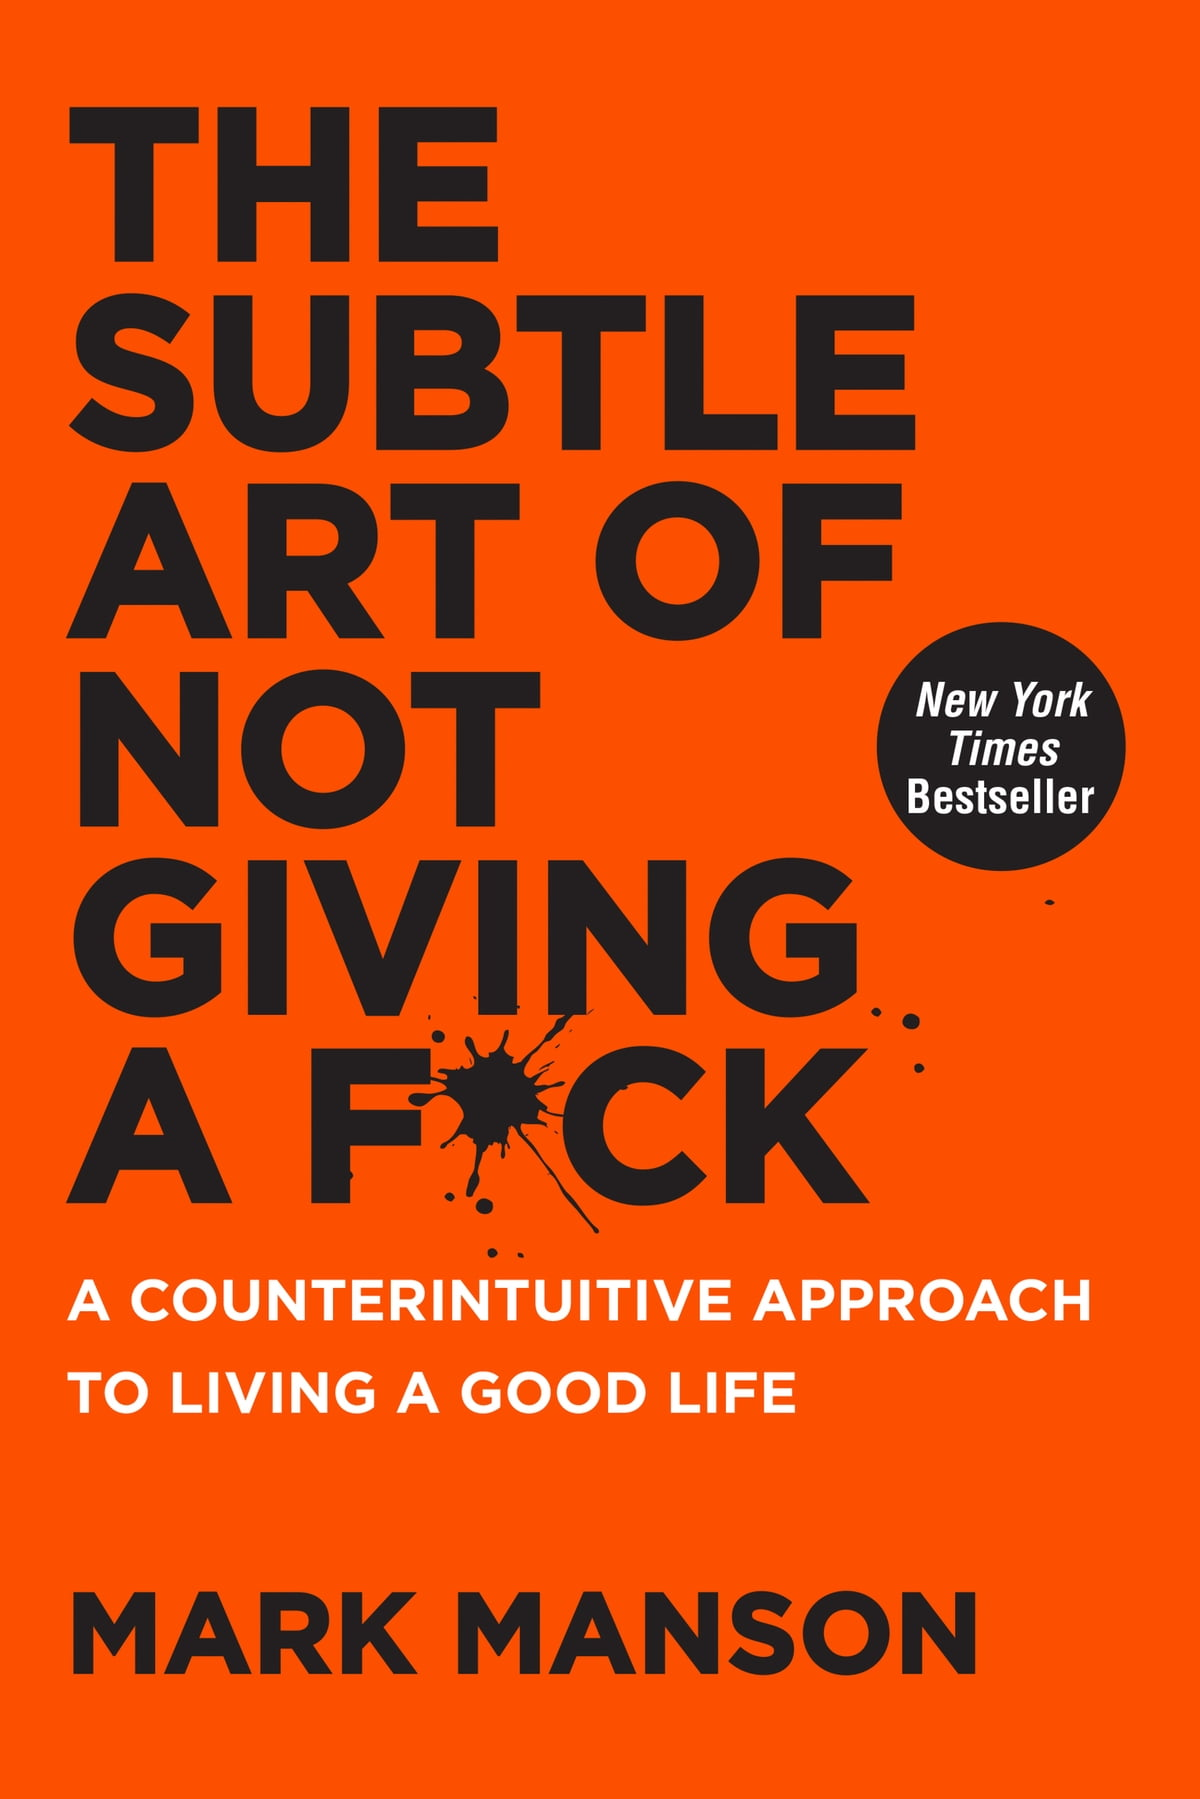 The Subtle Art Of Not Giving A F*ck  A Counterintuitive Approach To Living